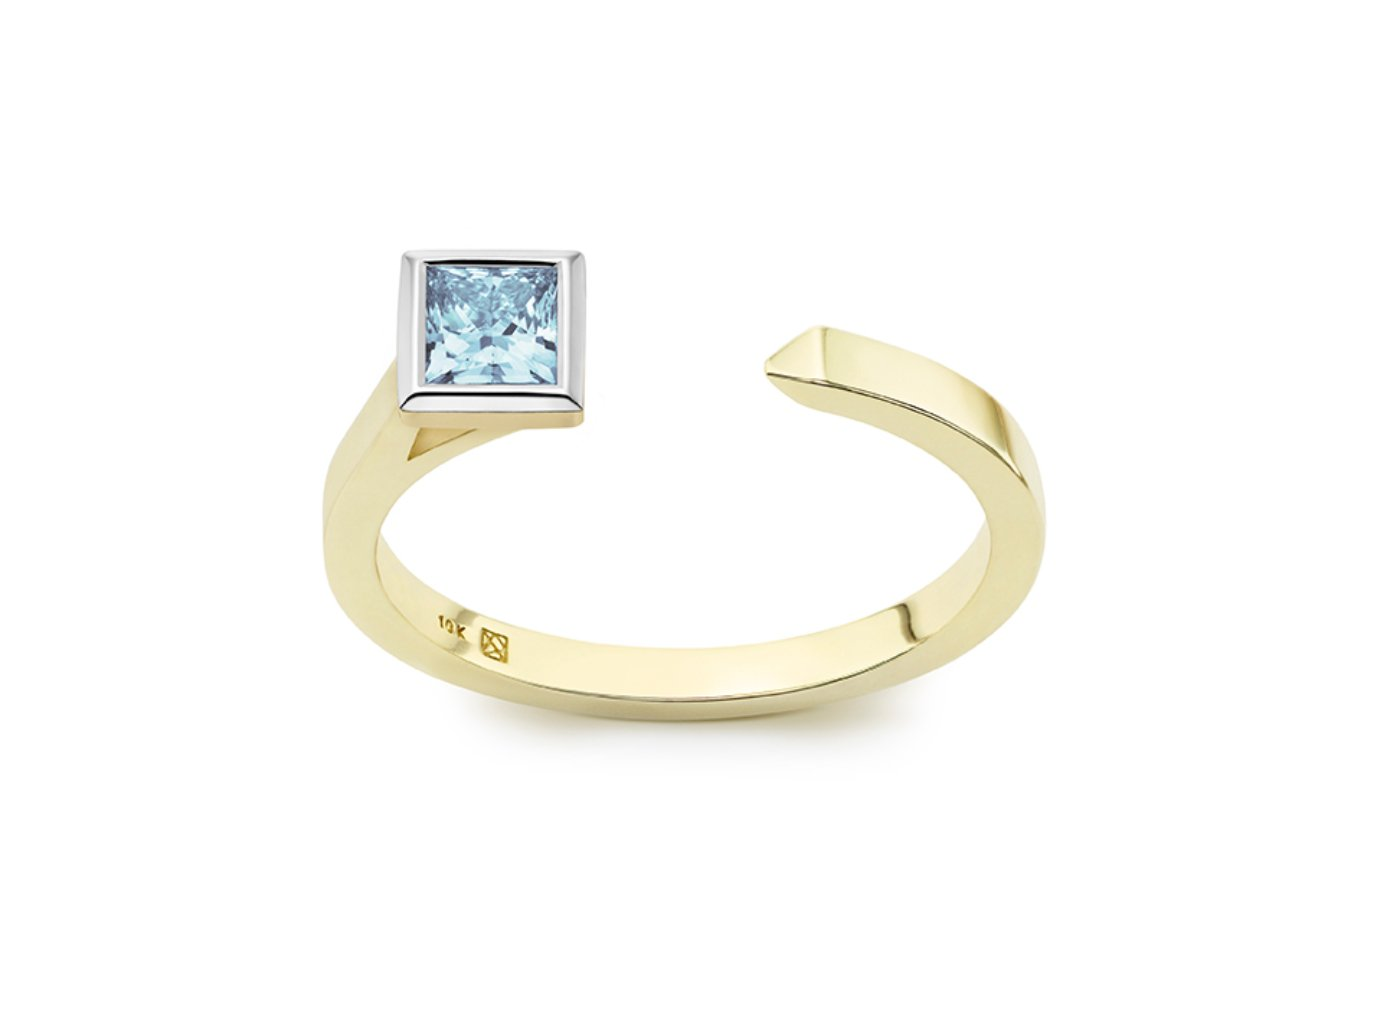 Front view of Princess open top 3/8 carat ring with blue diamond